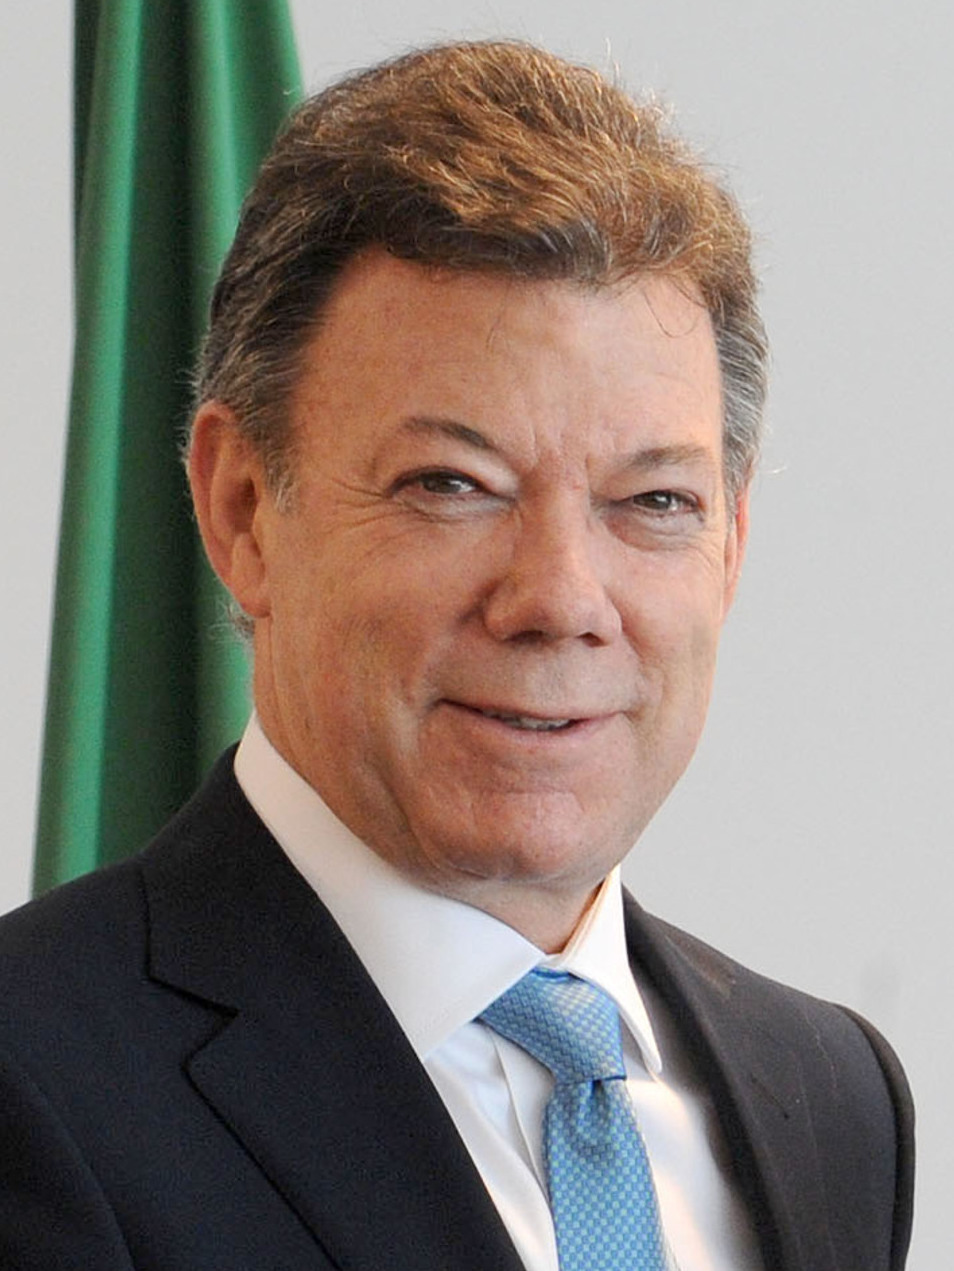 Juan Manuel Santos, president of Columbia since 2010 and 2016 Nobel Peace Prize winner. Photograph: Wilson Dias/Abr, derivative work: Coronades.